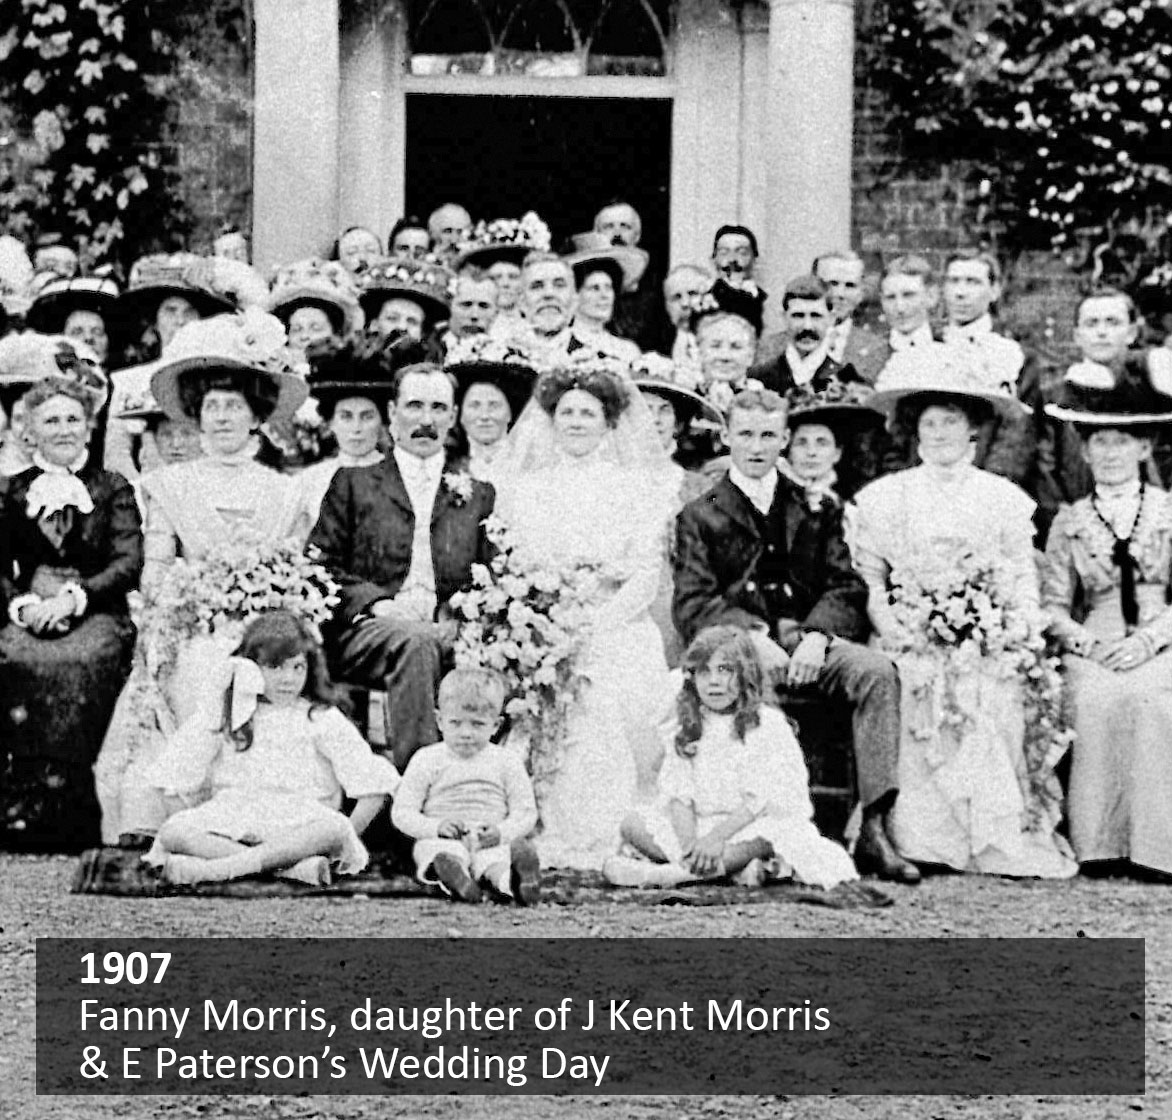 Fanny Morris, daughter of J Kent Morris & E Paterson's Wedding Day